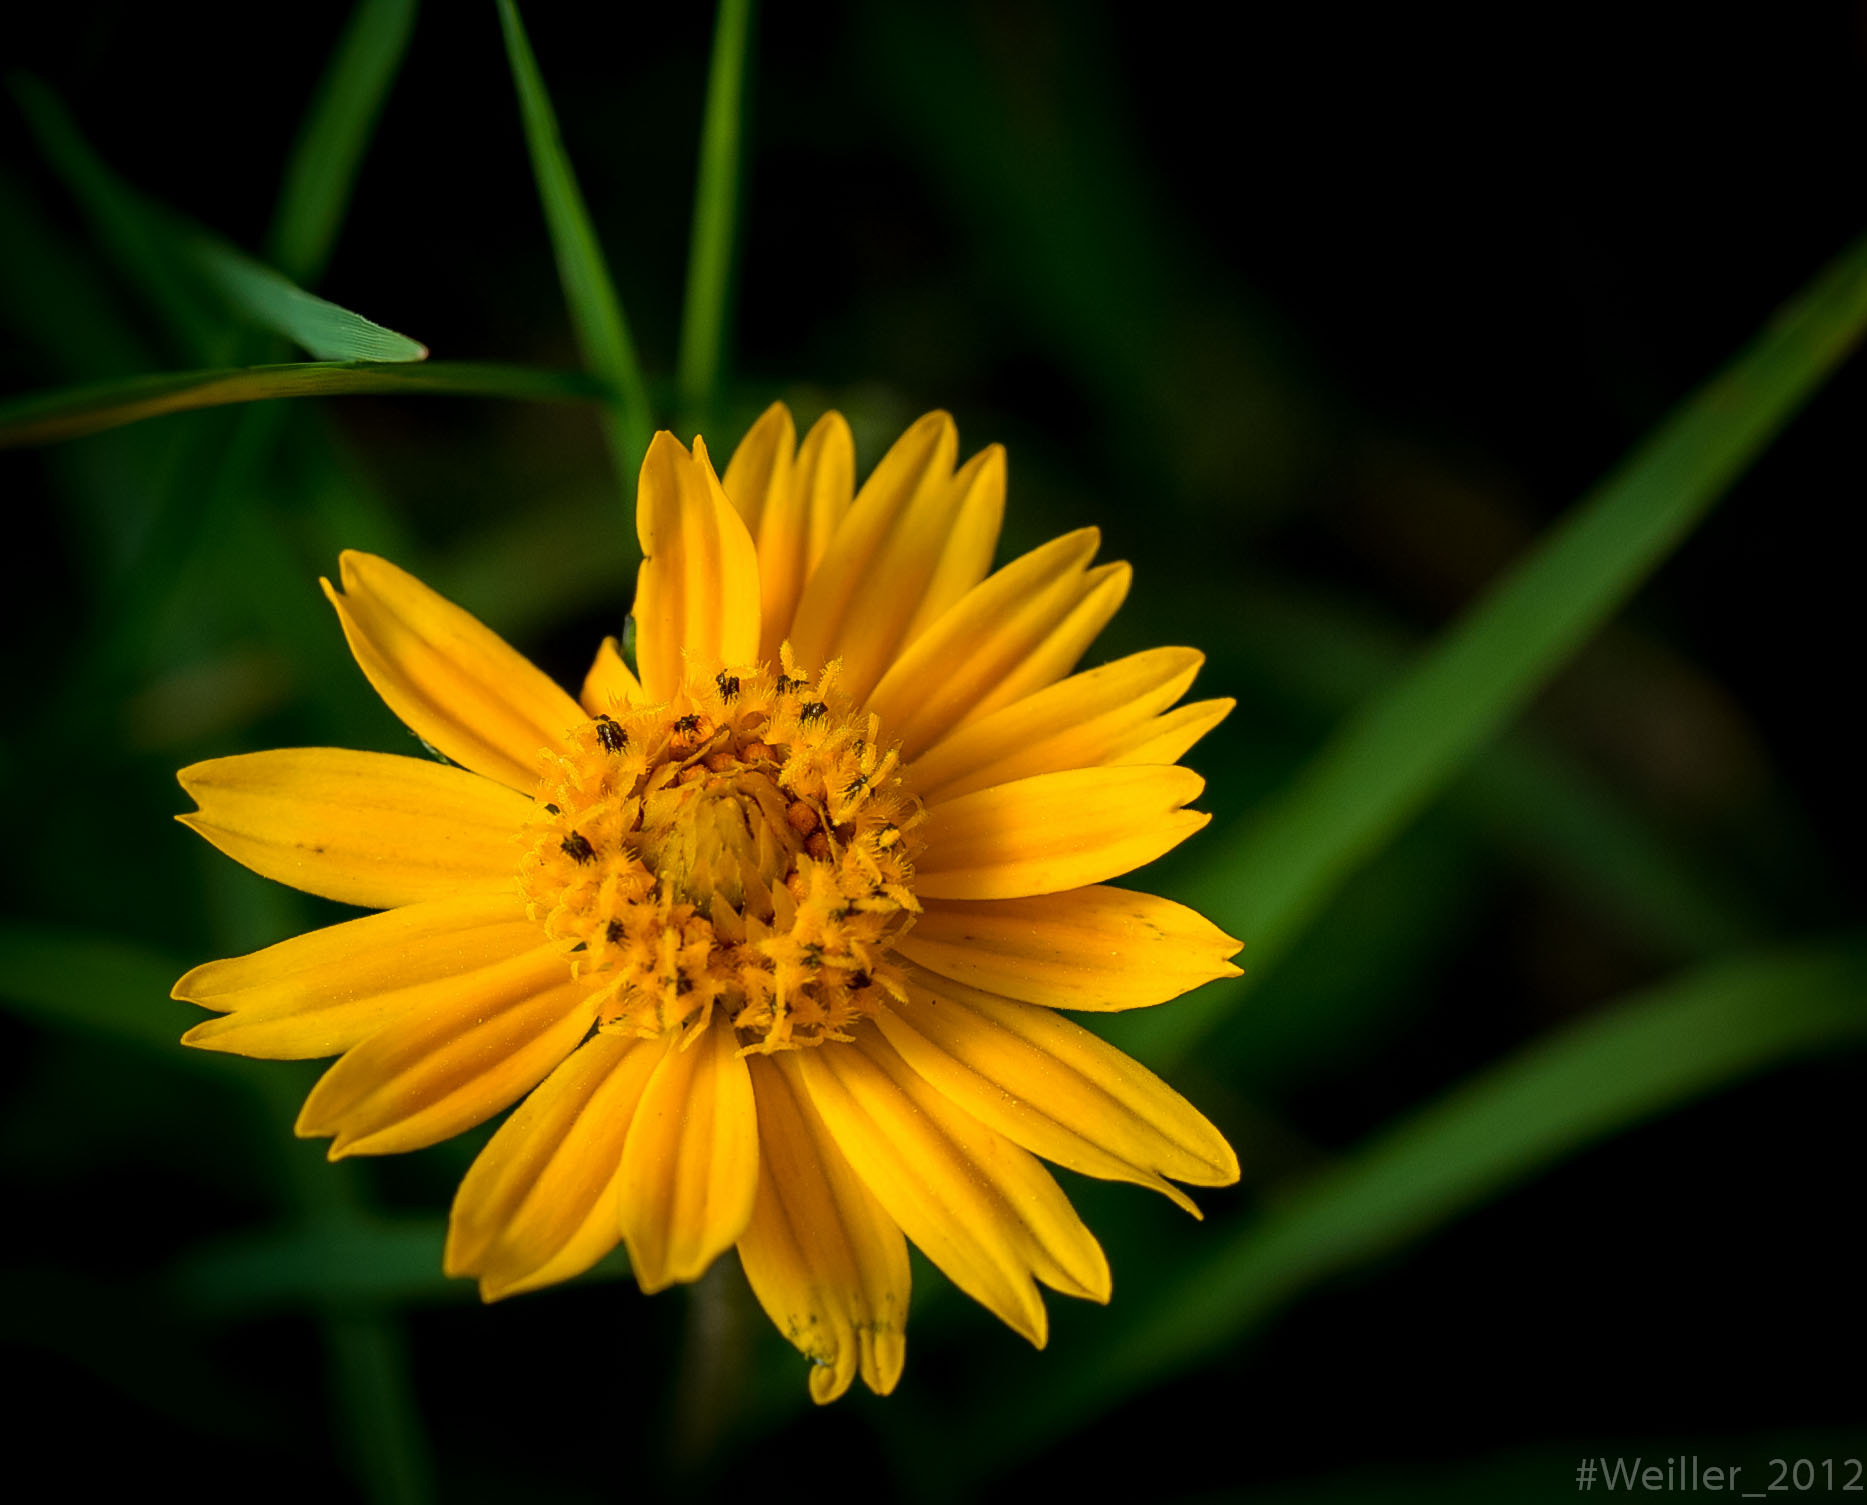 Photograph Yellow flower by Weiller :-) on 500px